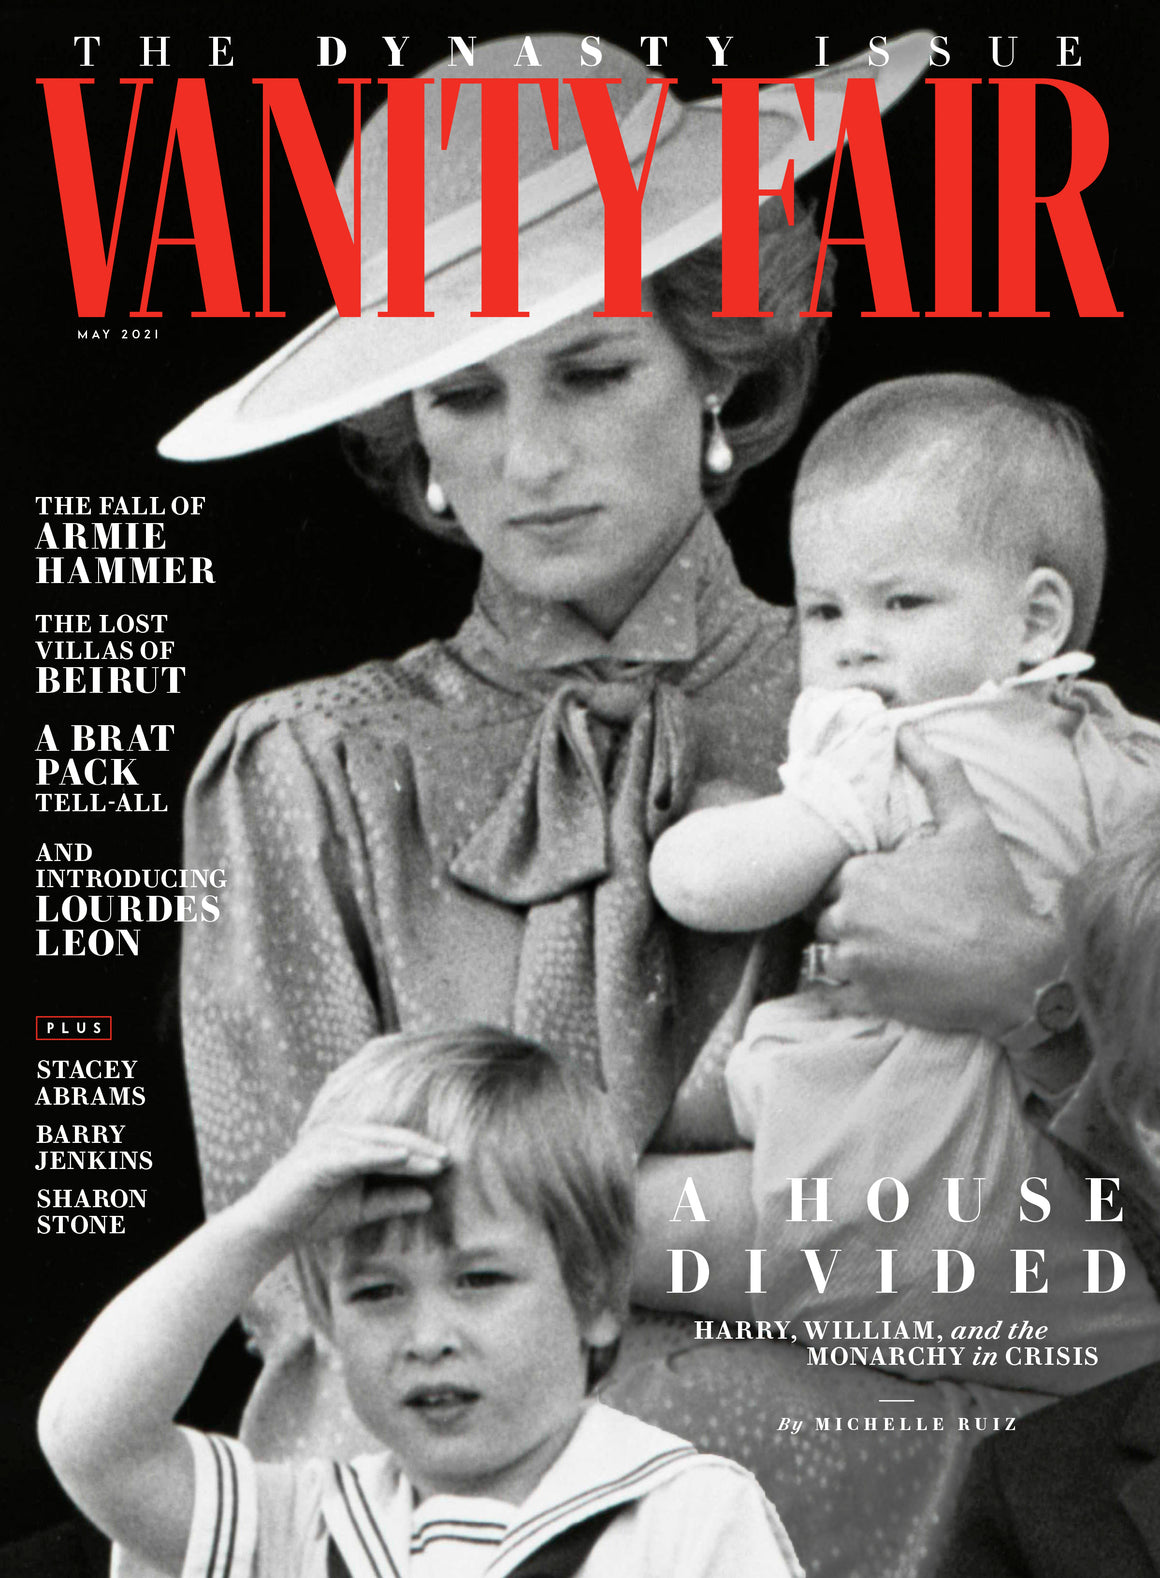 British VANITY FAIR Magazine May 2021: PRINCESS DIANA PRINCE HARRY & WILLIAM